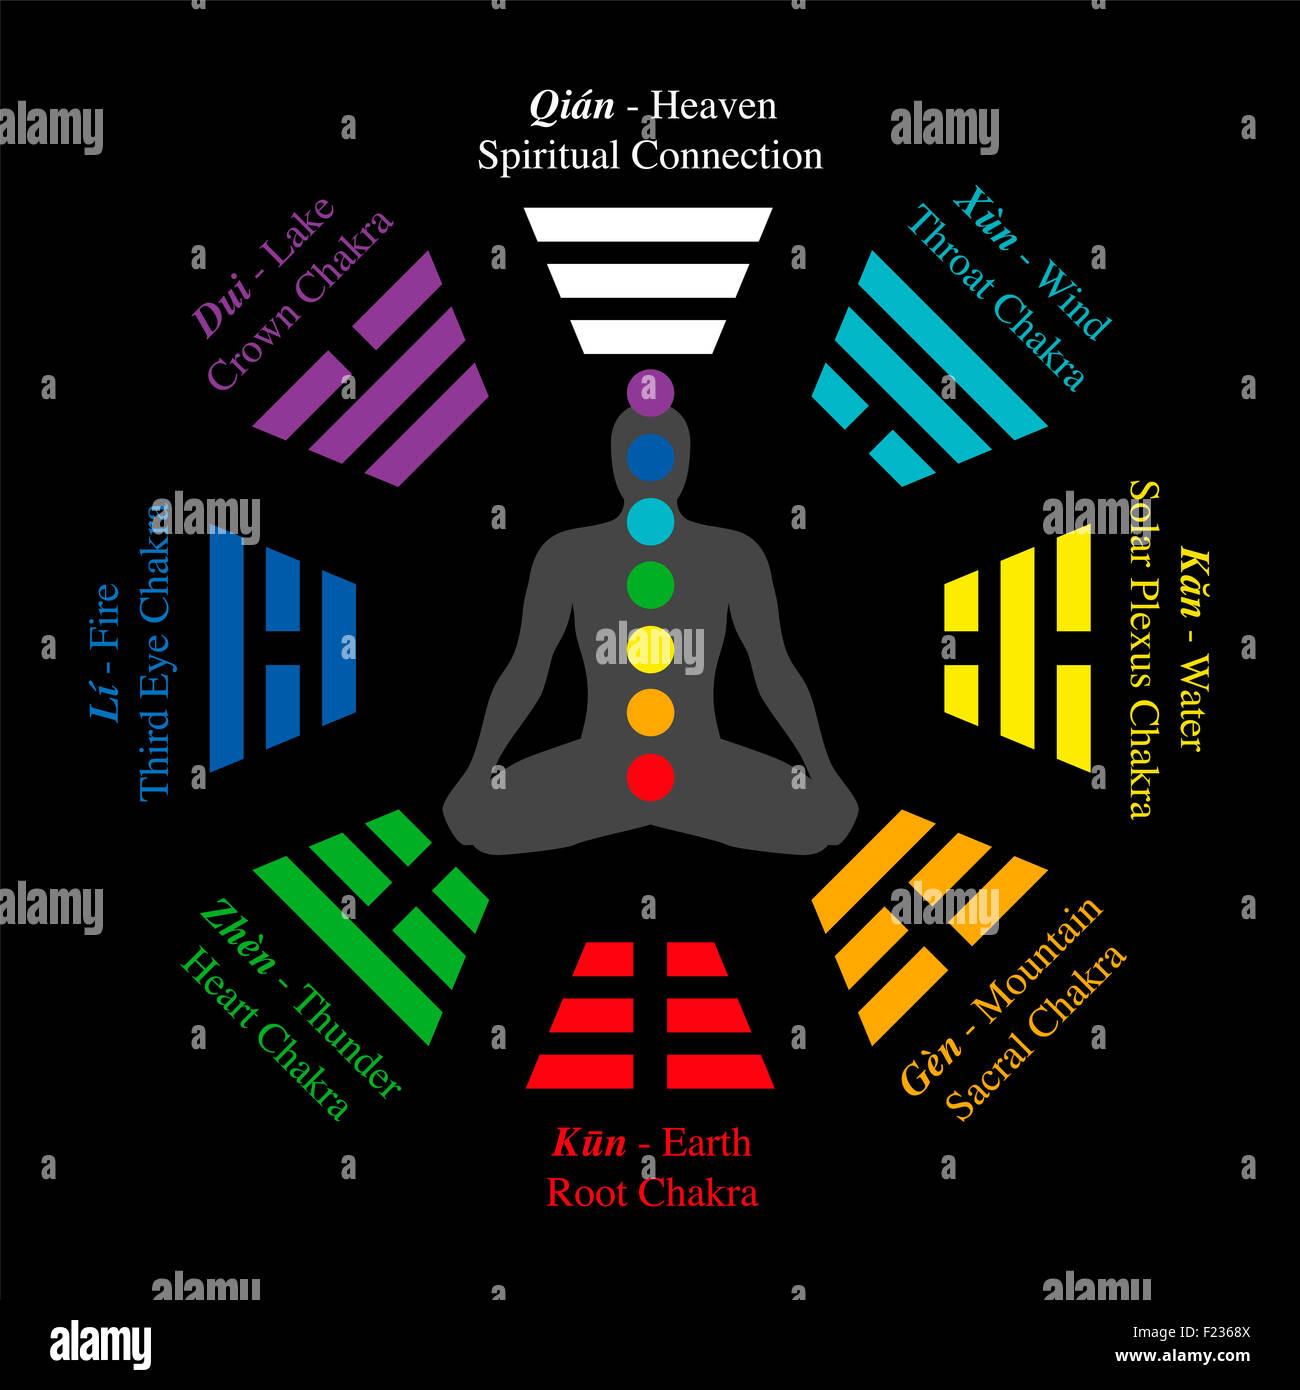 Trigrams of I Ching with chinese names and meanings - plus corresponding chakras. - Stock Image